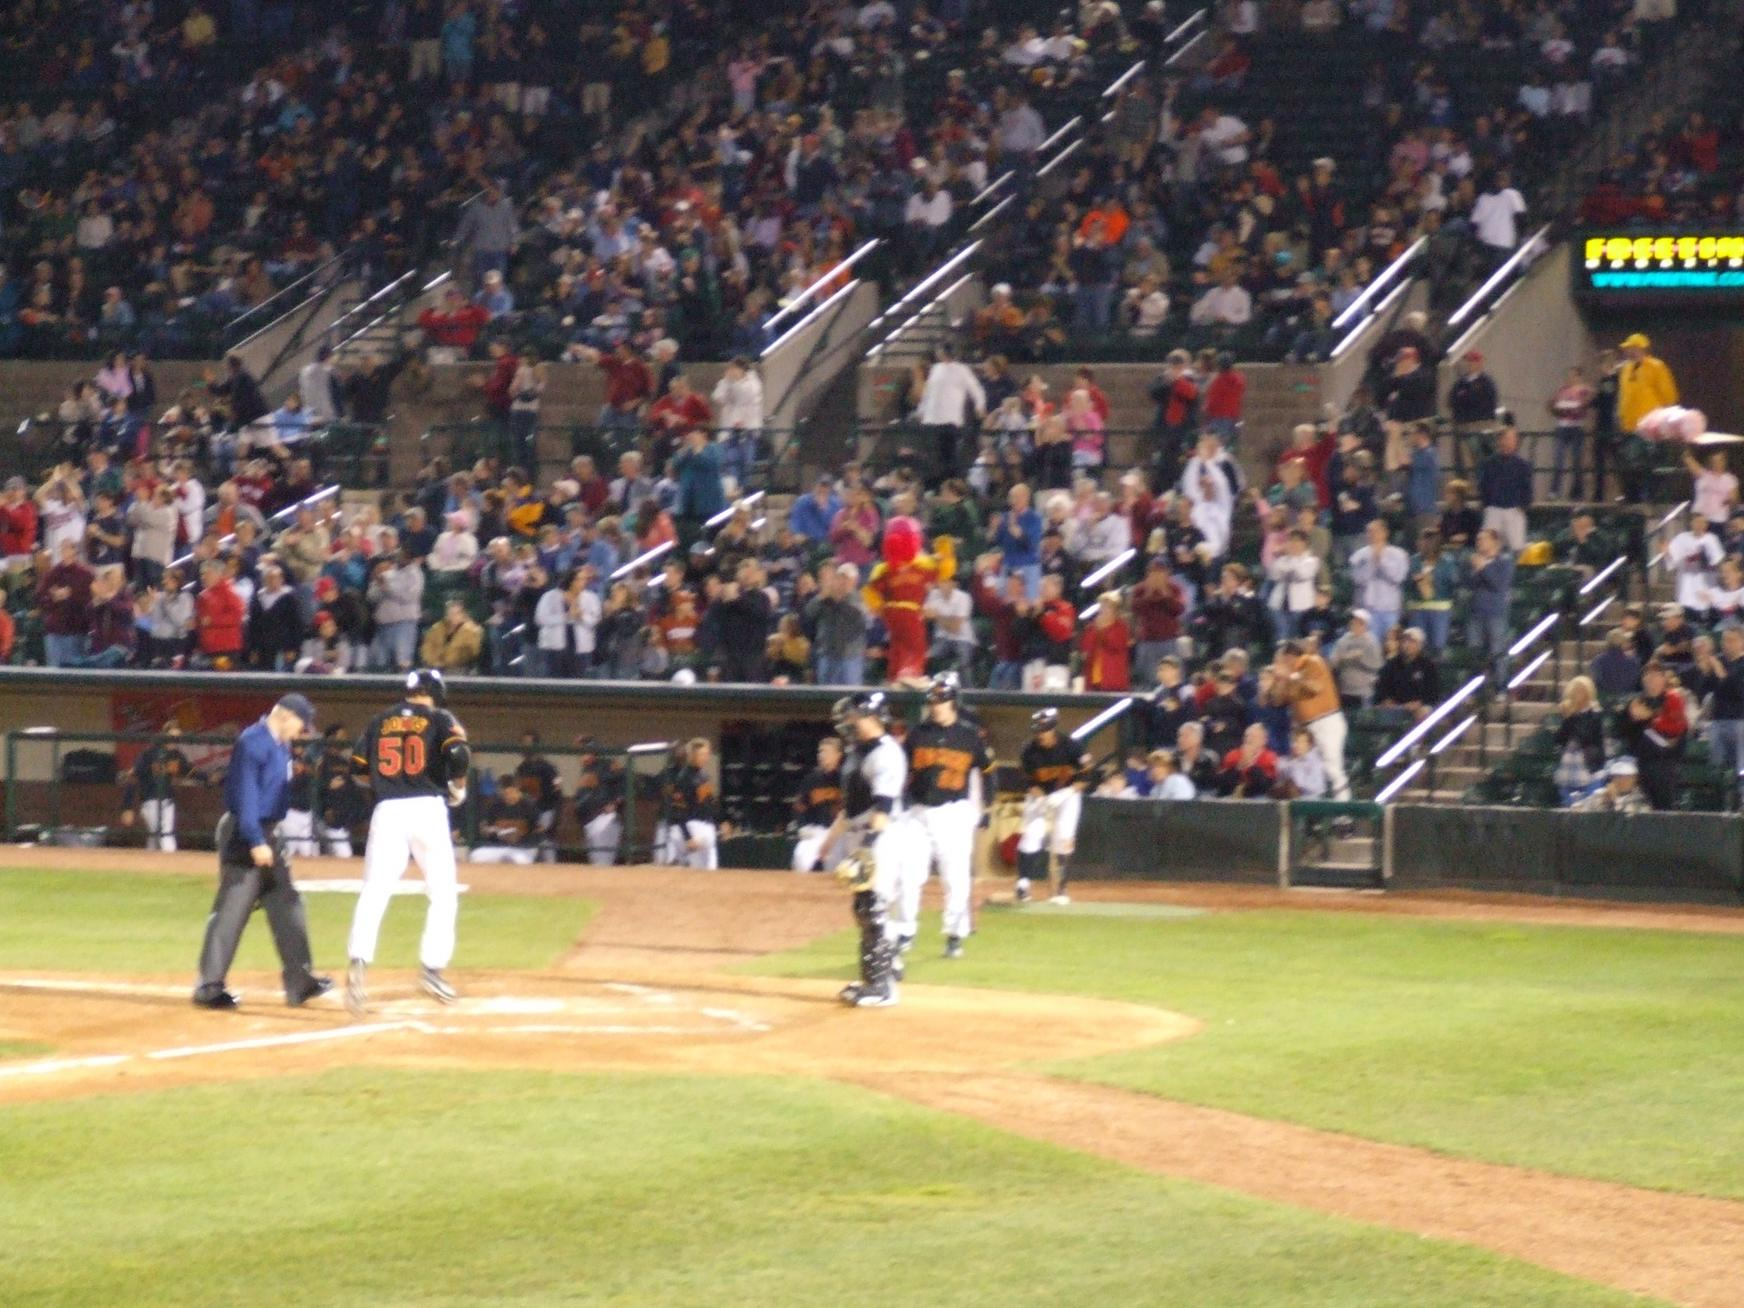 d 08548 syracuse chiefs - photo#29